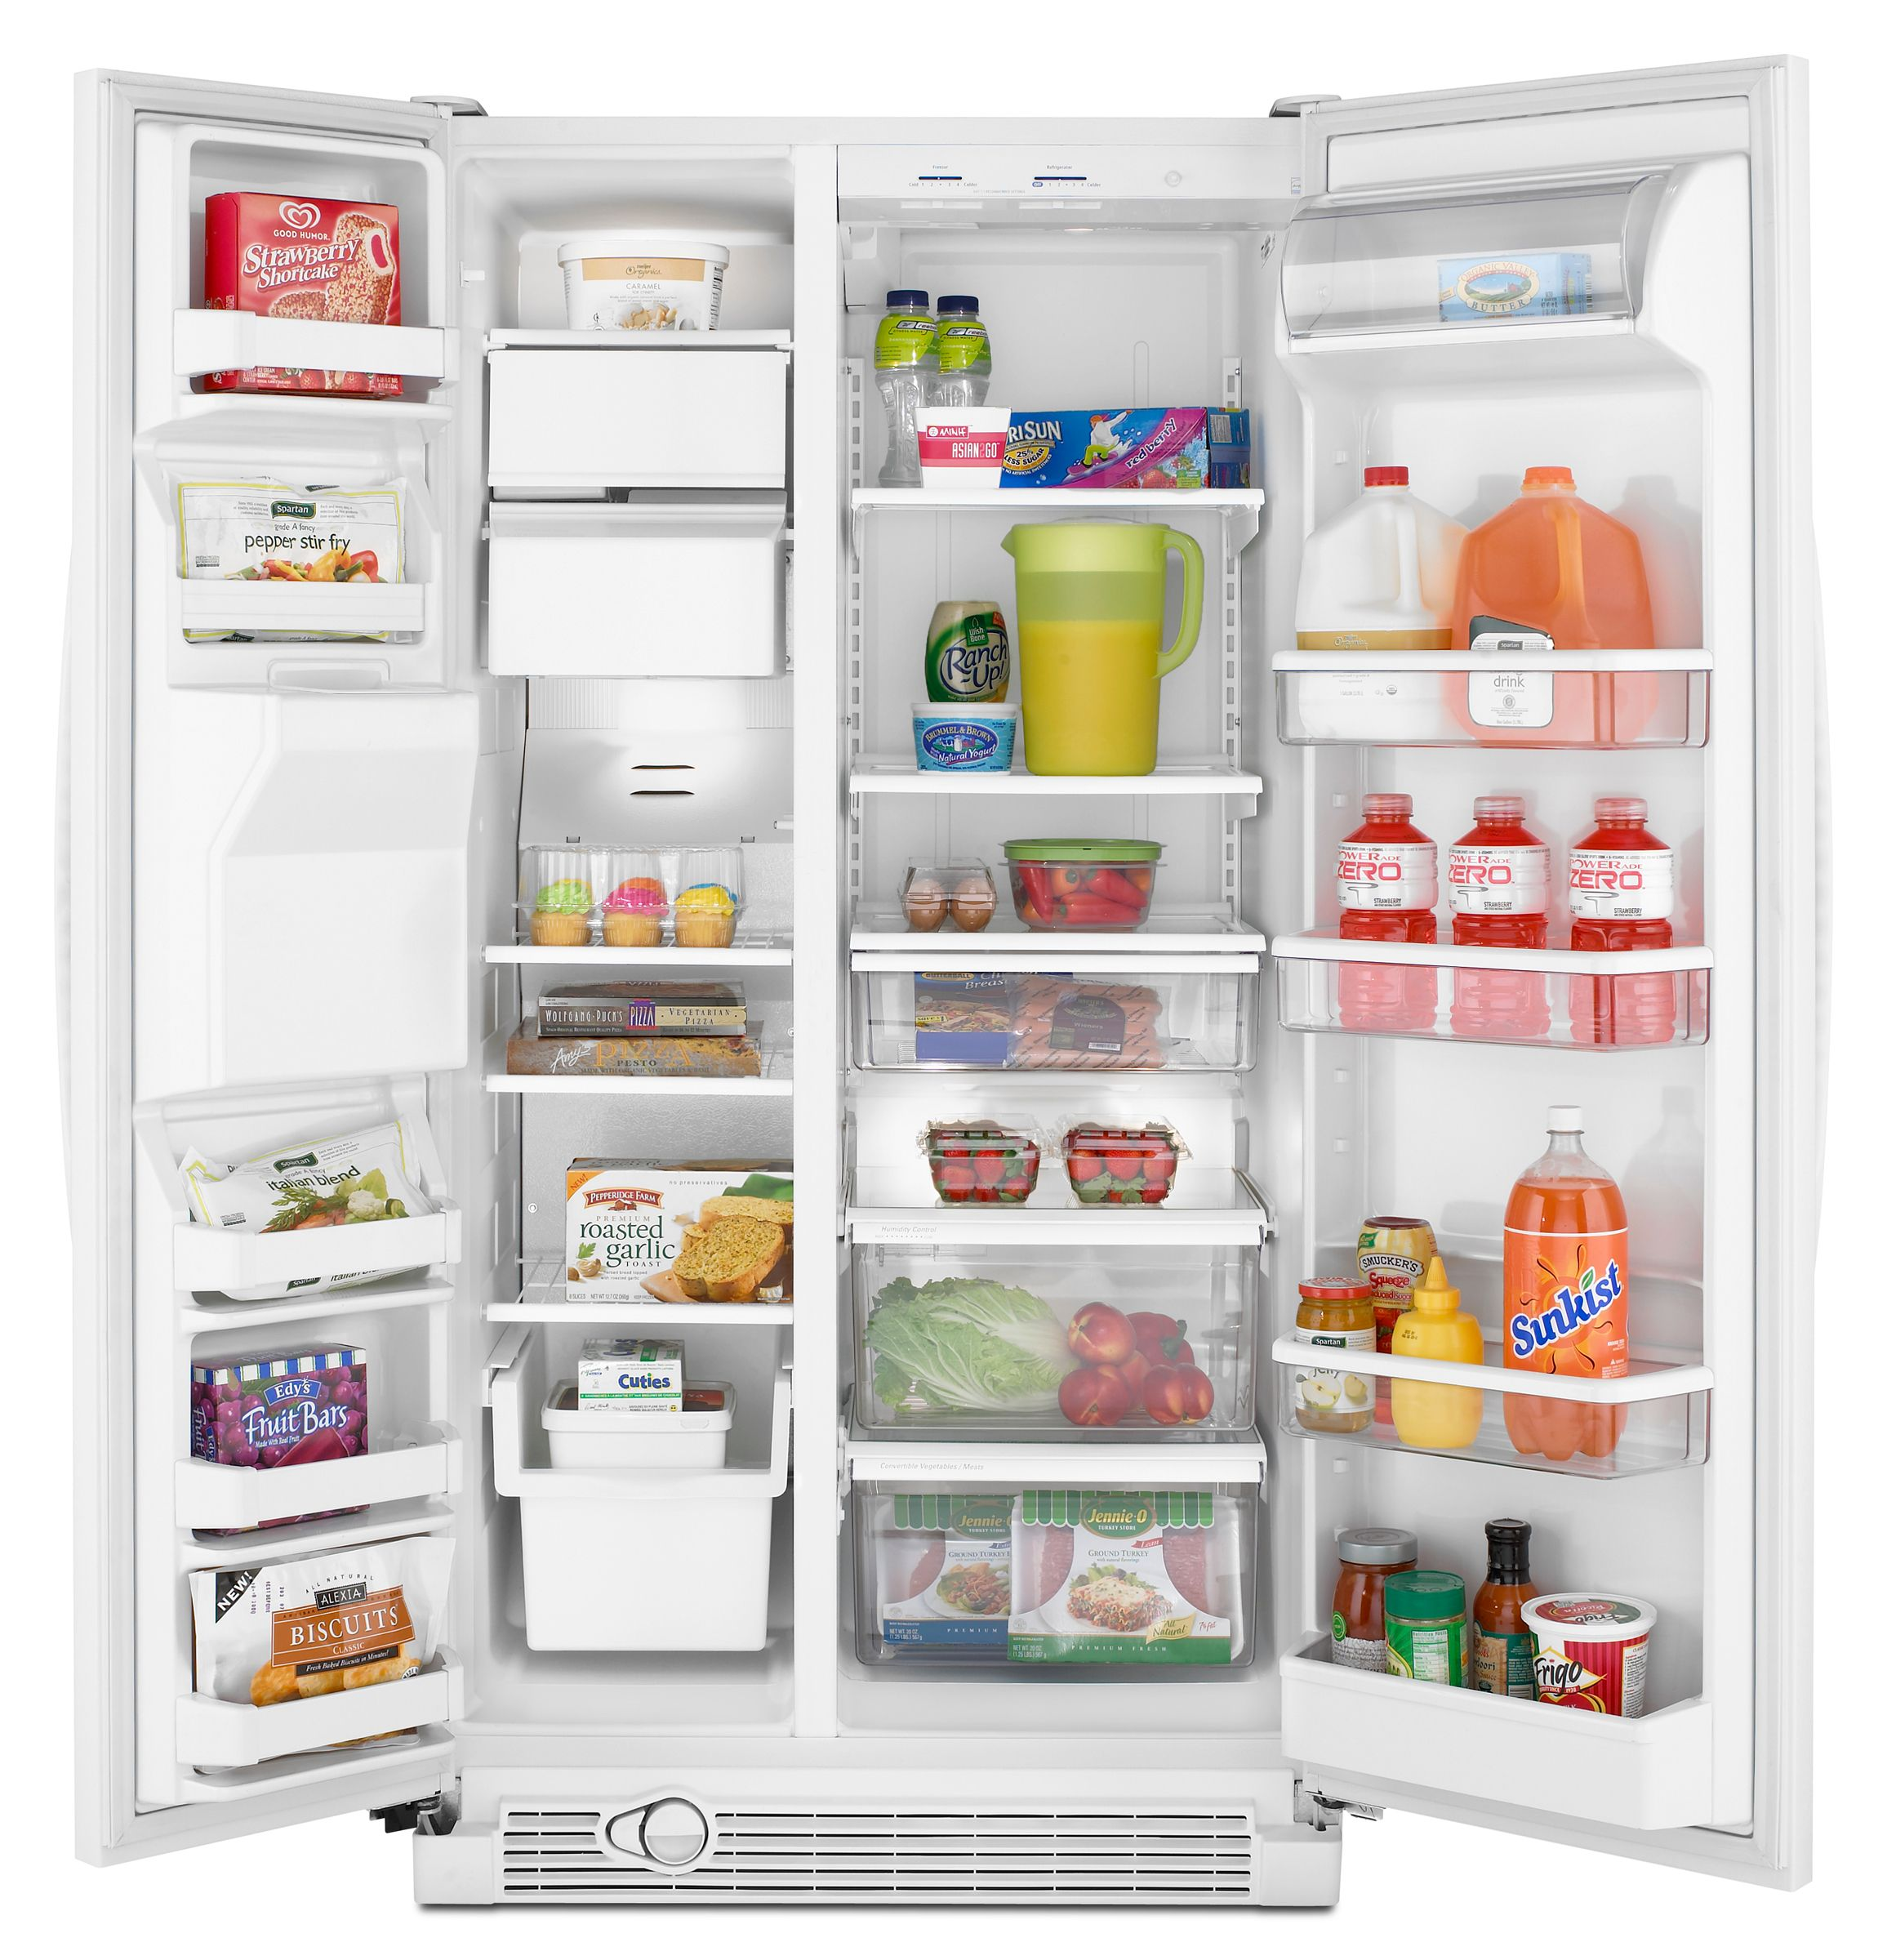 Amana 25.4 cu. ft. Side-By-Side Refrigerator w/ PUR® Water Filtration (ASD2524VE)